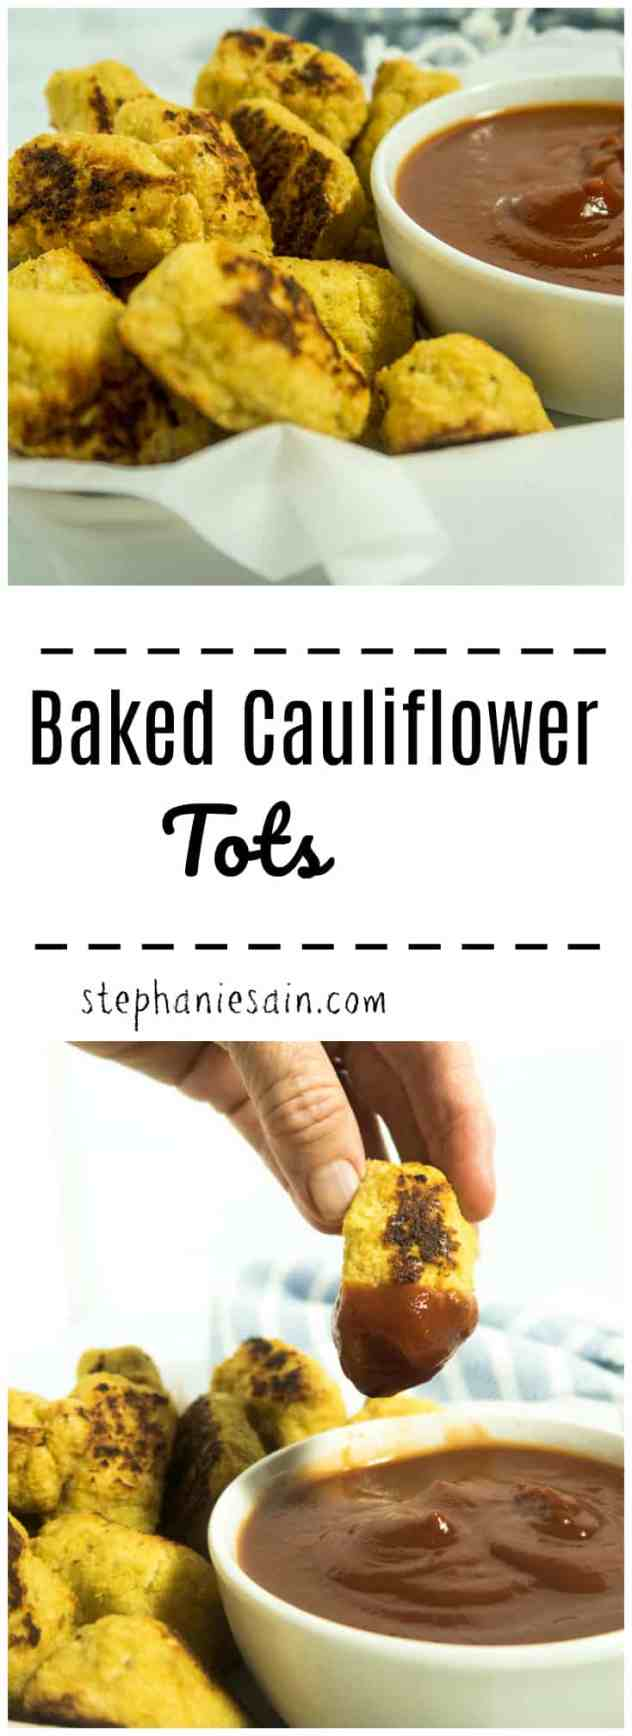 Baked Cauliflower Tots only require six ingredients for a tasty, healthier low carb option to traditional tater tots. Great as a side, or snack. Vegetarian & Gluten Free.